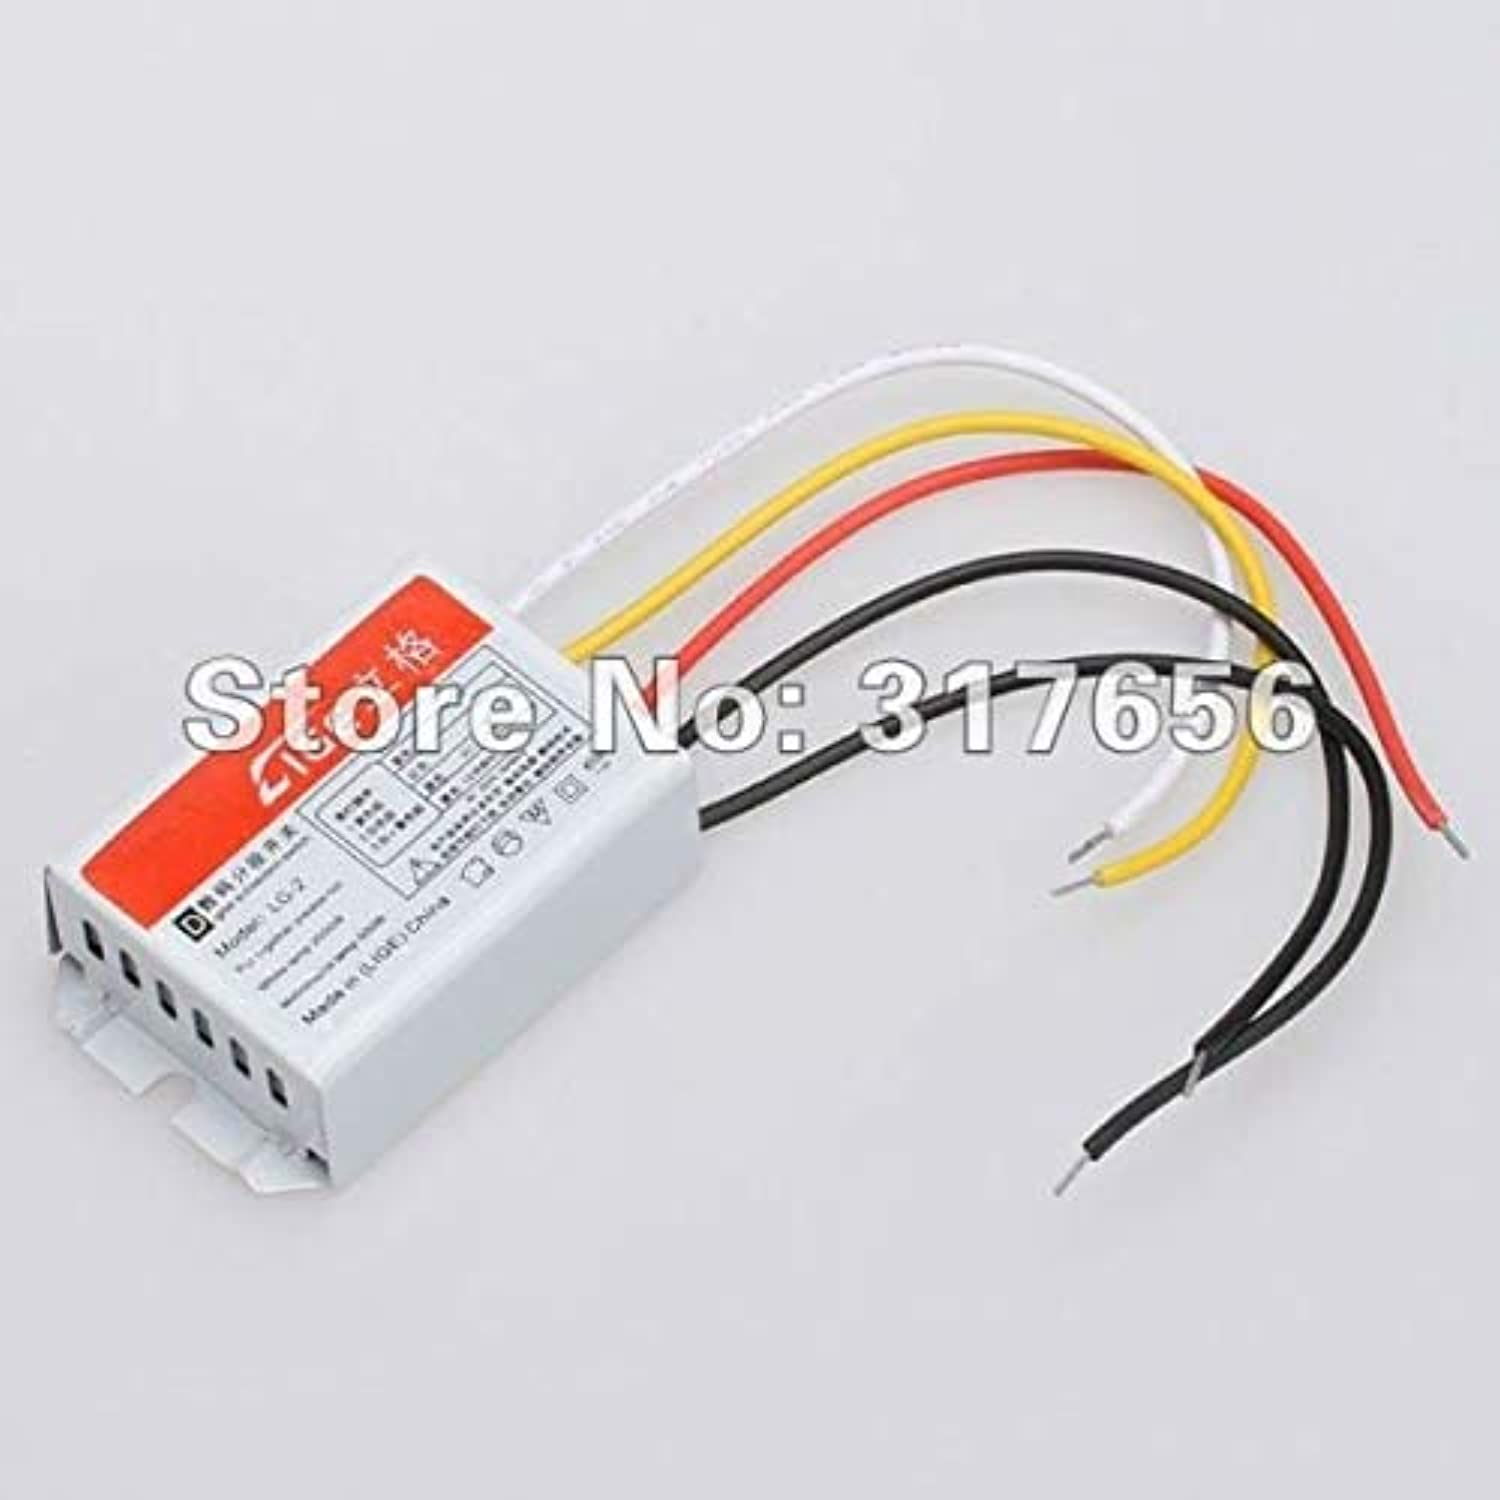 ,Digital Subsection Switch 2 Way 3 Section Lighting Control Switch for Ceiling lamp, Hanging lamp, Porch Light, etc